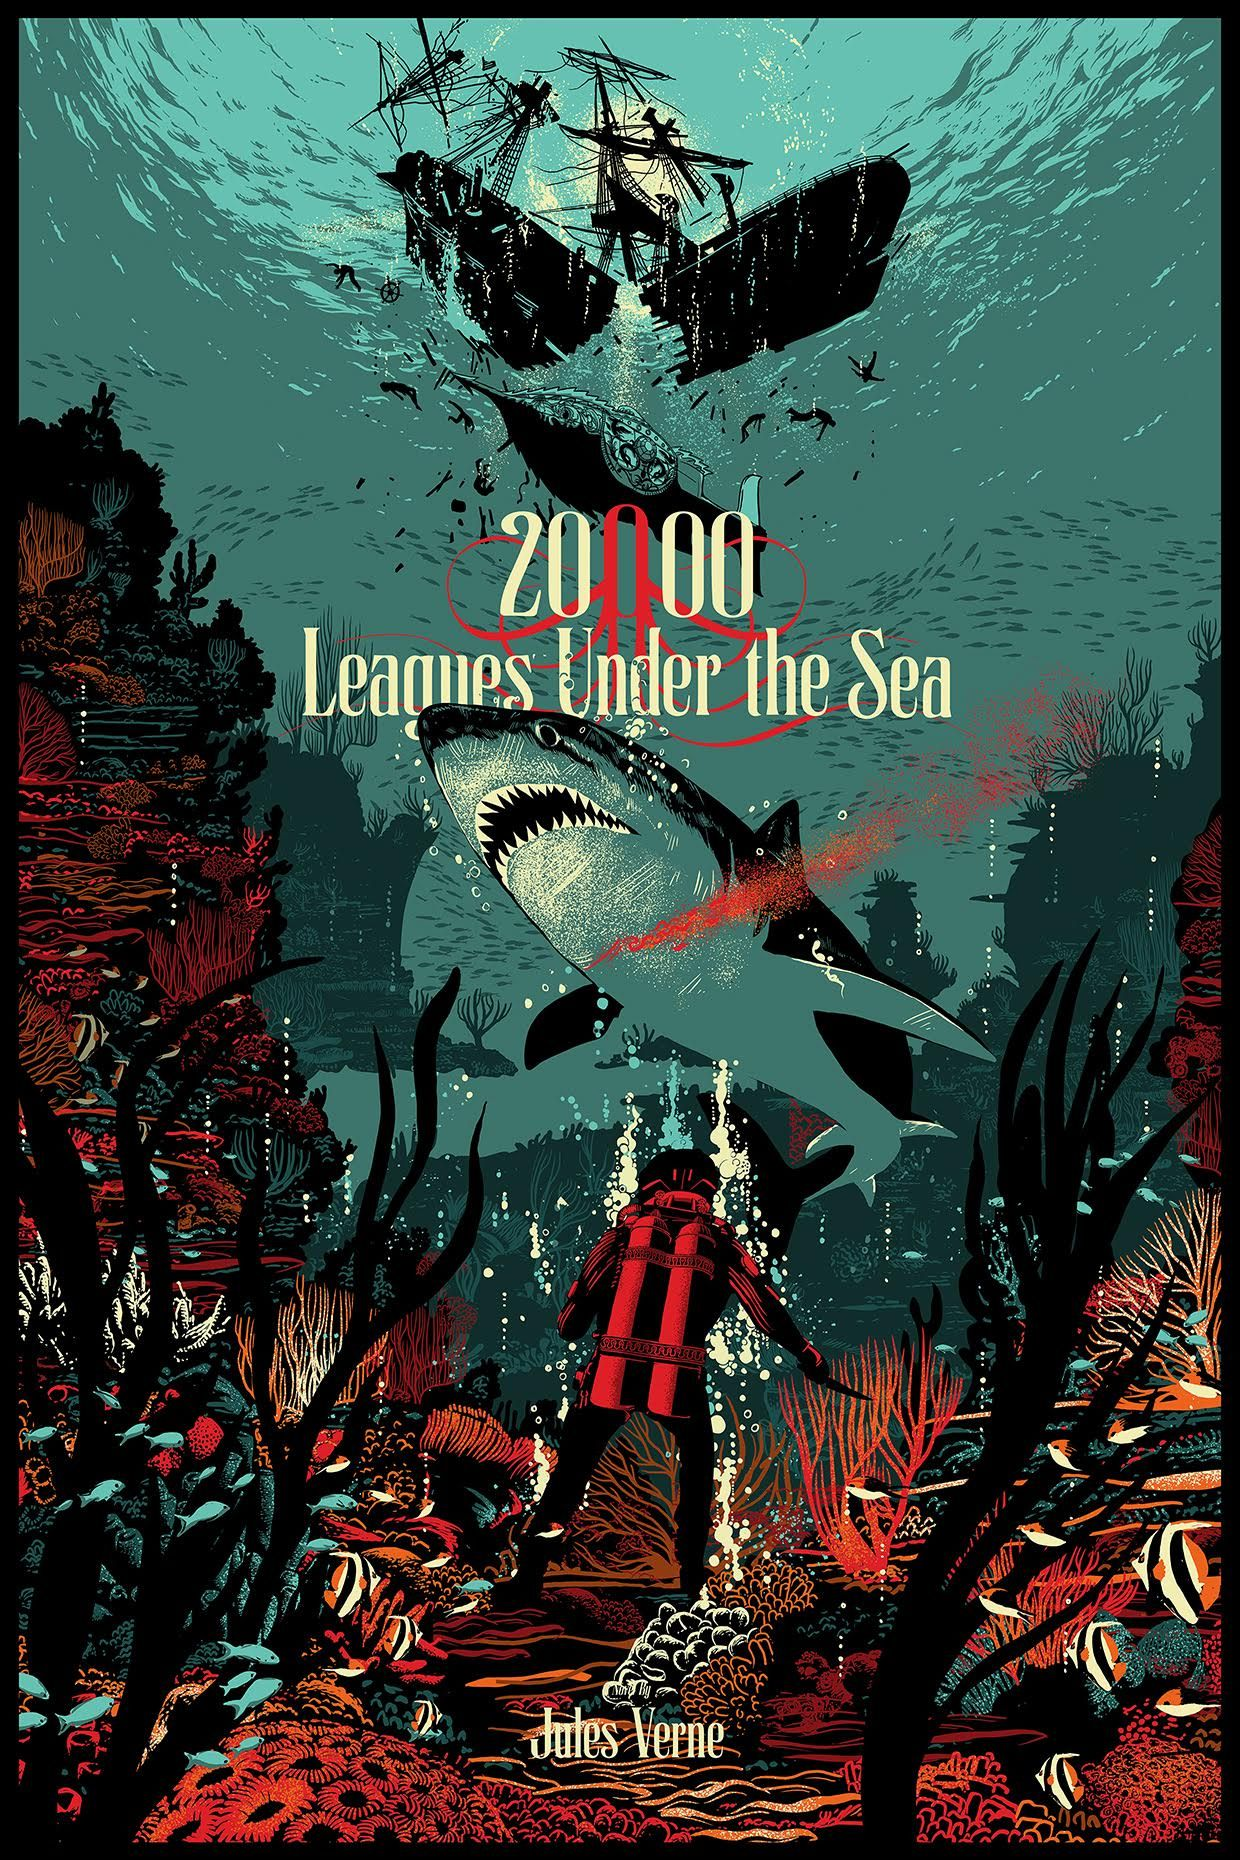 Under the ebook free leagues 20 download 000 sea